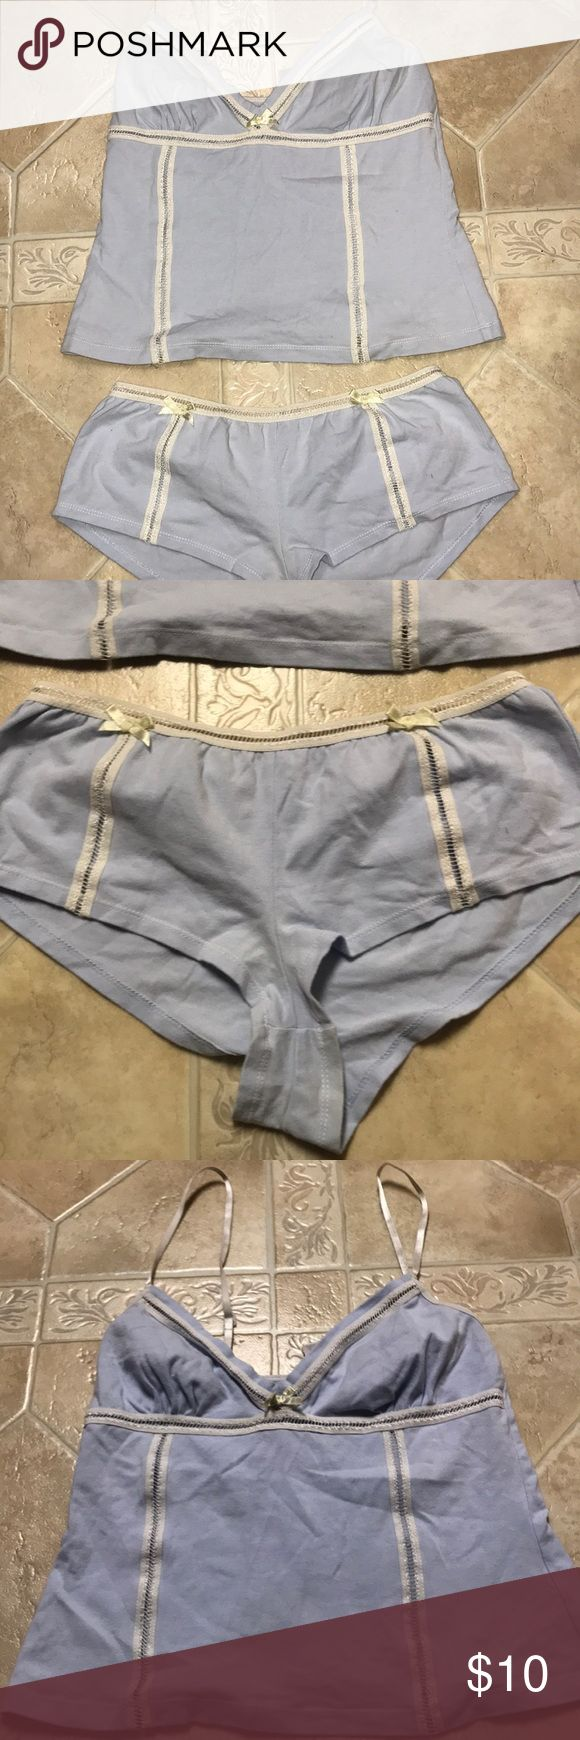 🔥Never Worn🔥Women's small sleepwear cami set Light blue and white women's sleepwear cami set by Avon. Size small and never worn. It has been washed and sitting in my dresser for a long time. Really adorable pajama set. Avon Intimates & Sleepwear Chemises & Slips